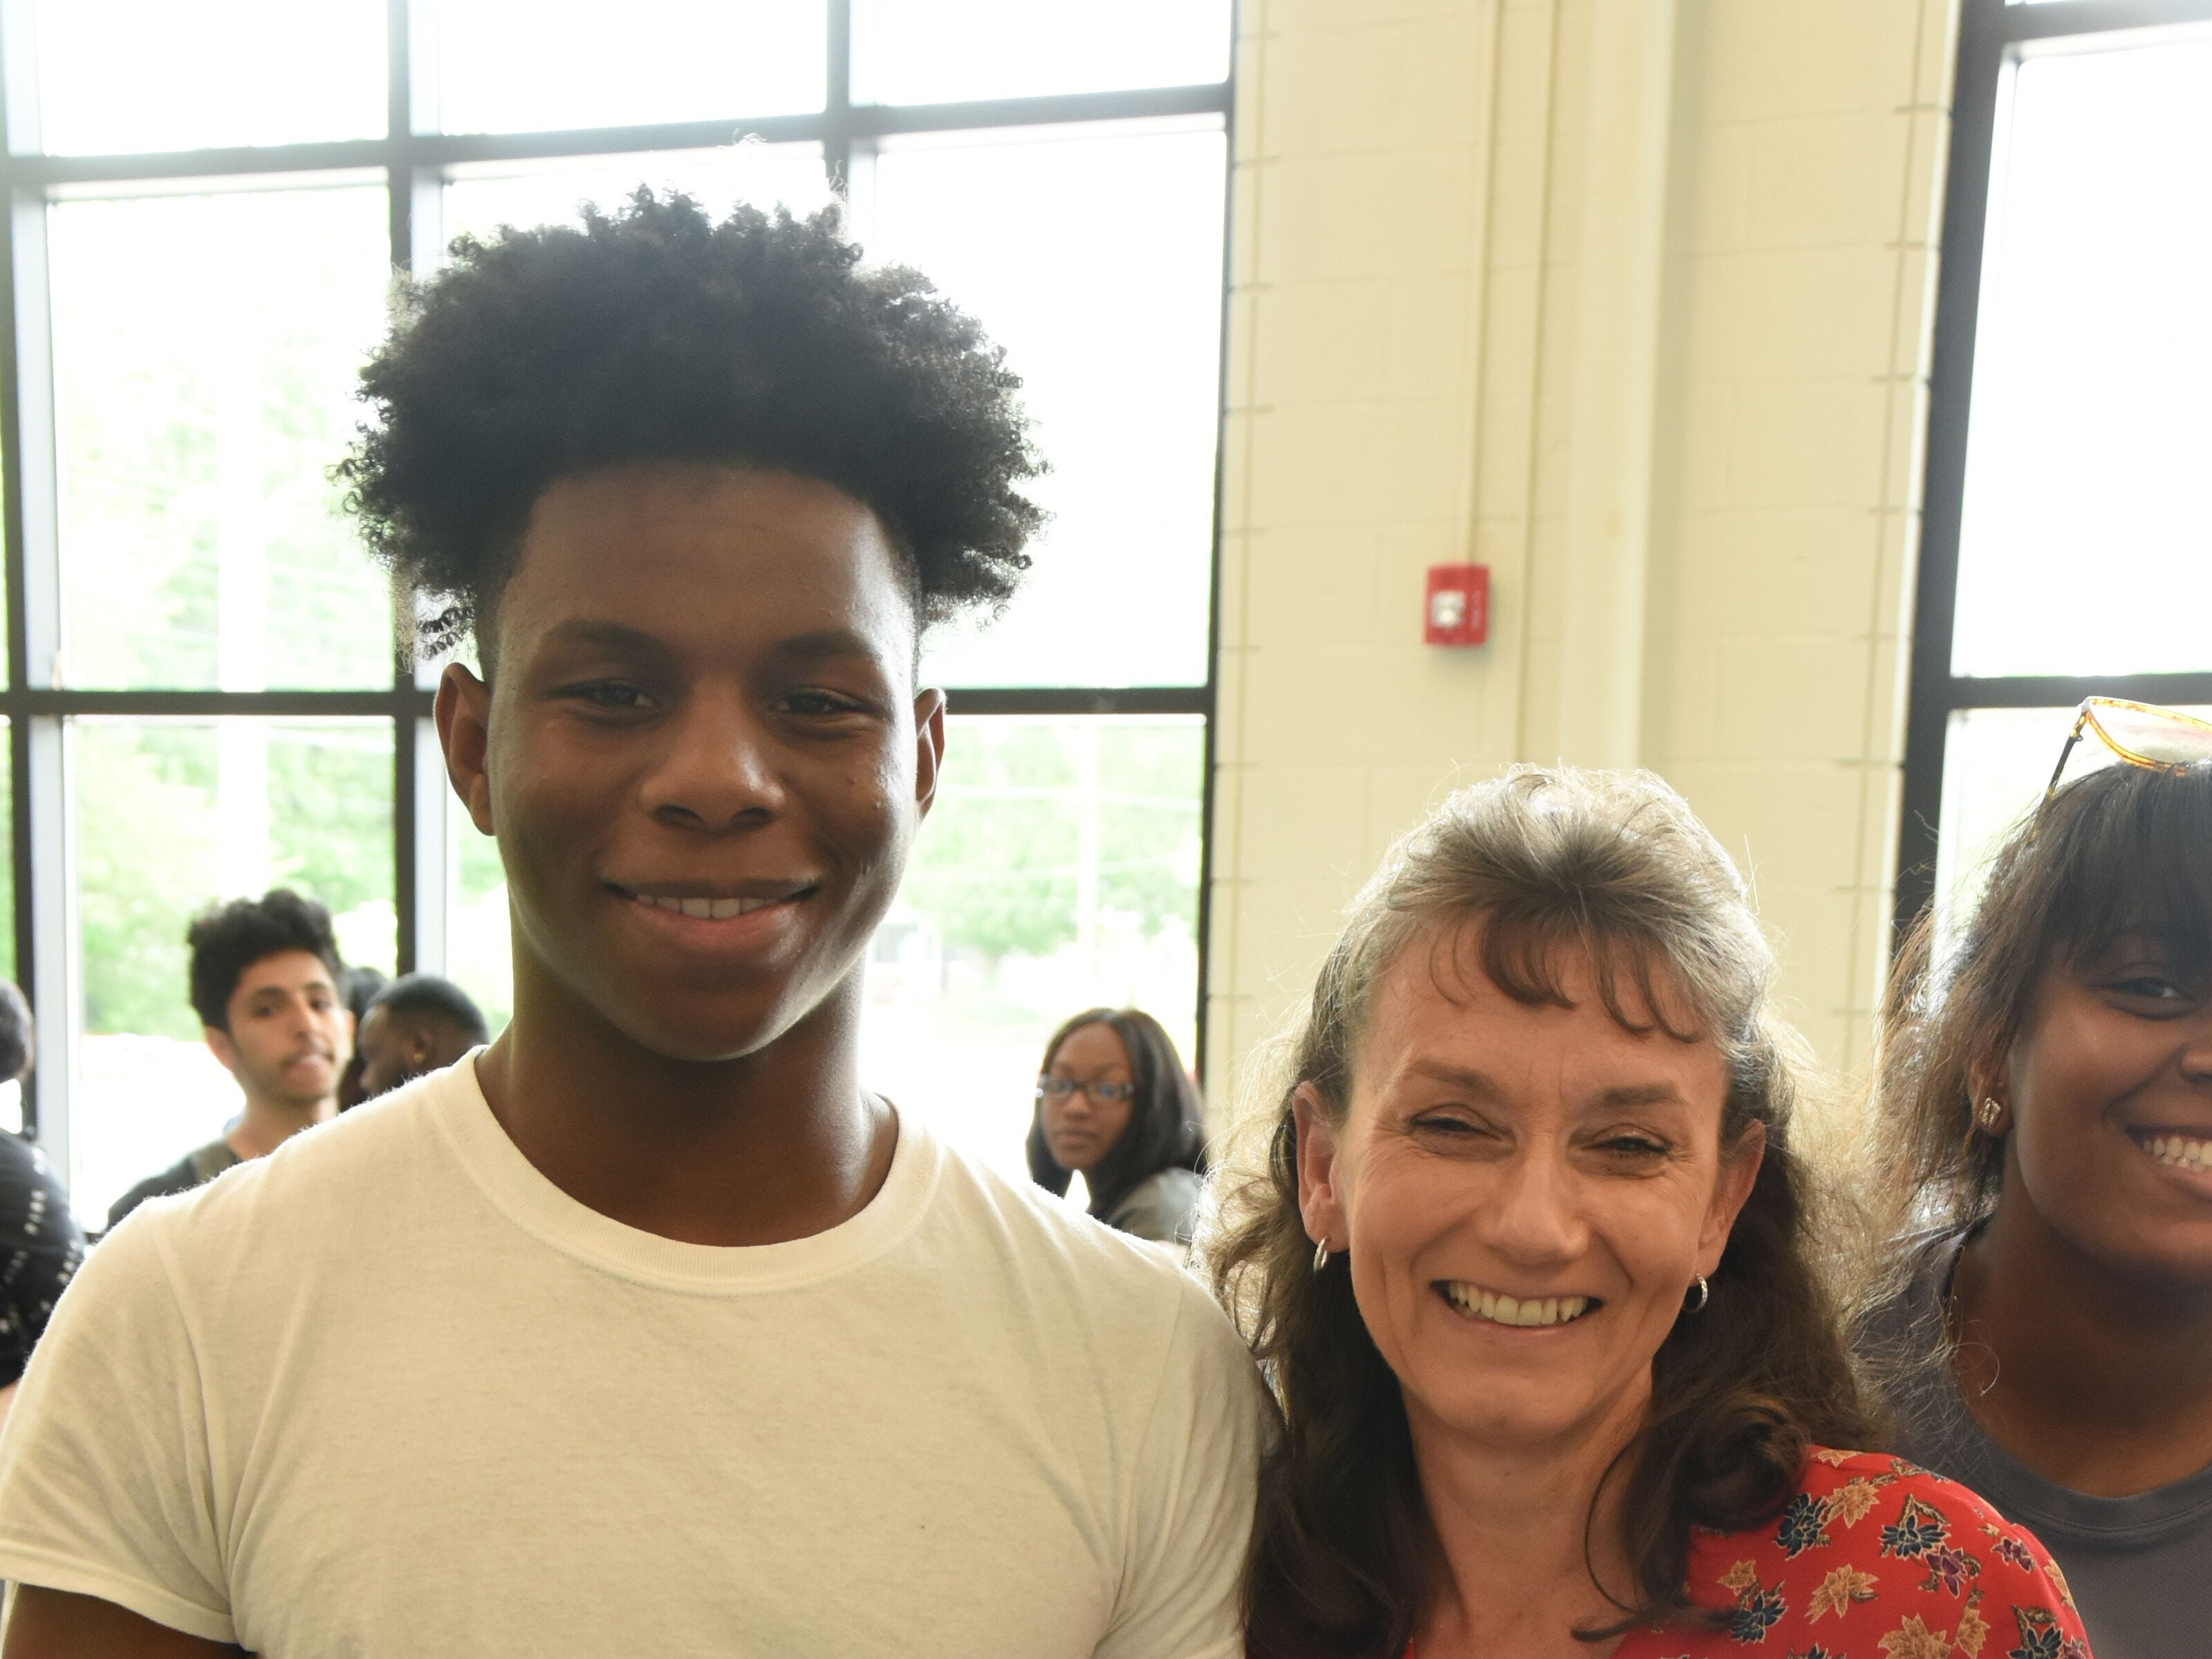 Jackson State Community College president Dr. Allana Hamilton takes a picture with Jackson-Central Merry Early College High senior and JSCC another student photo bombs.